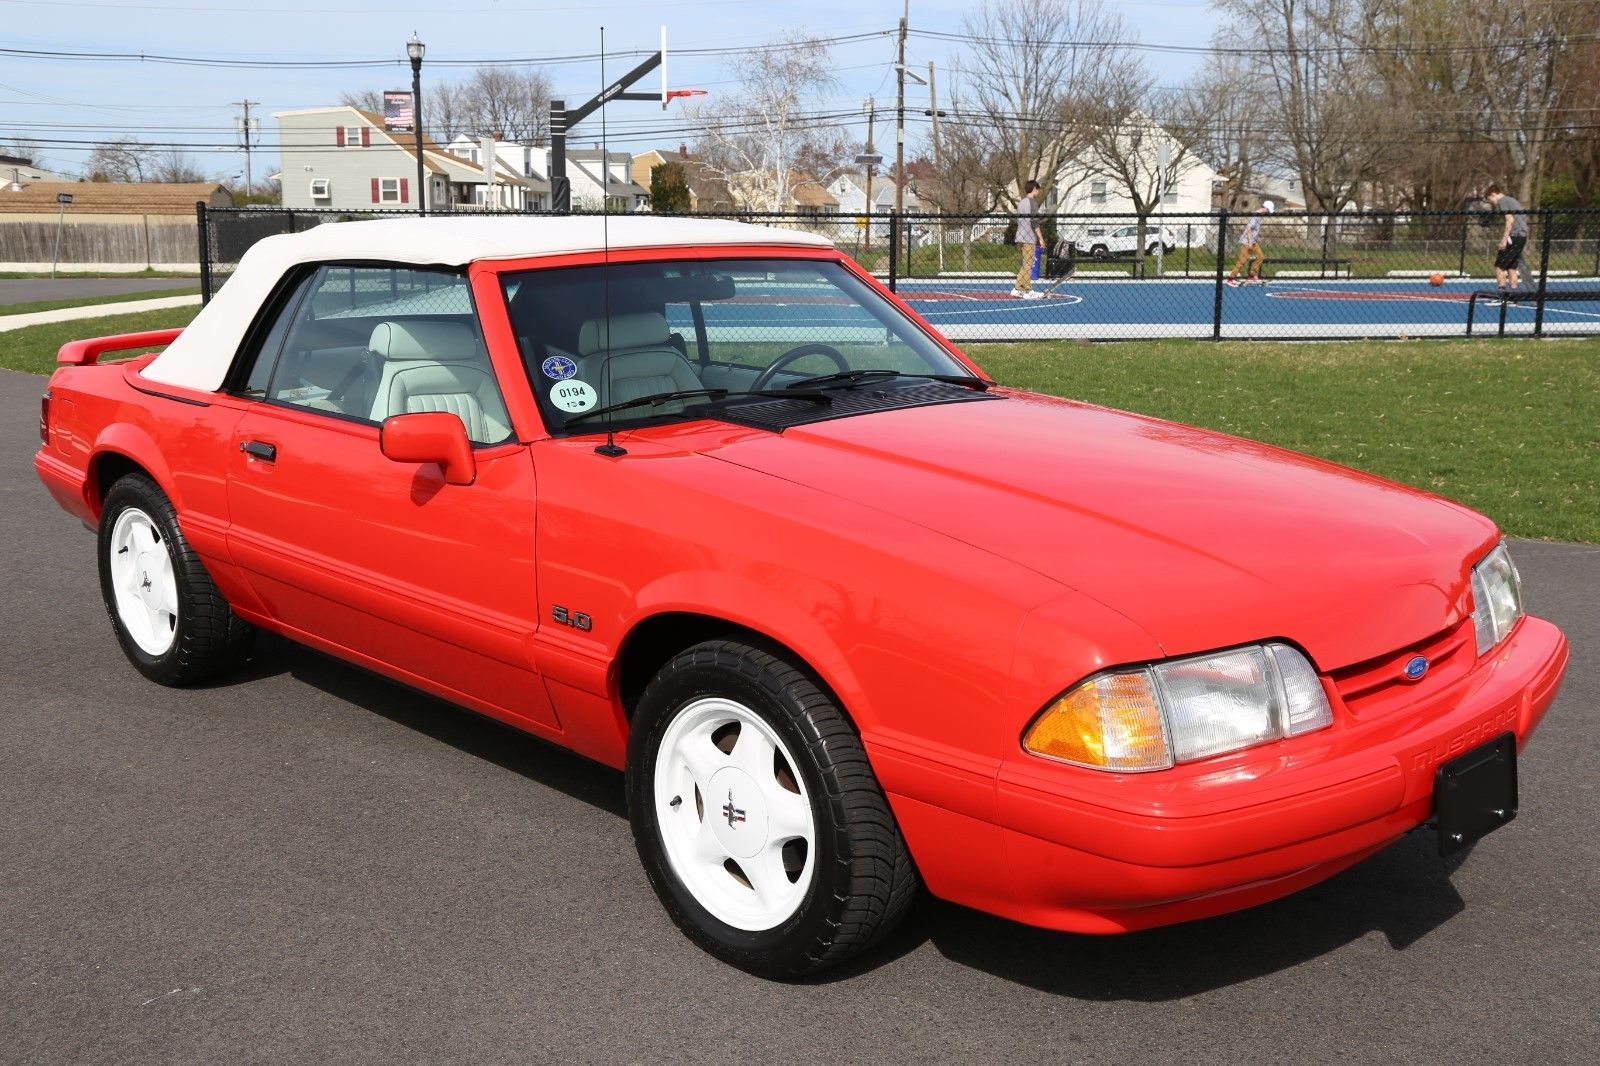 Great 1992 ford mustang lx convertible 1992 ford mustang lx summer edition convertible 16k actual miles mint buy it now 2018 2019